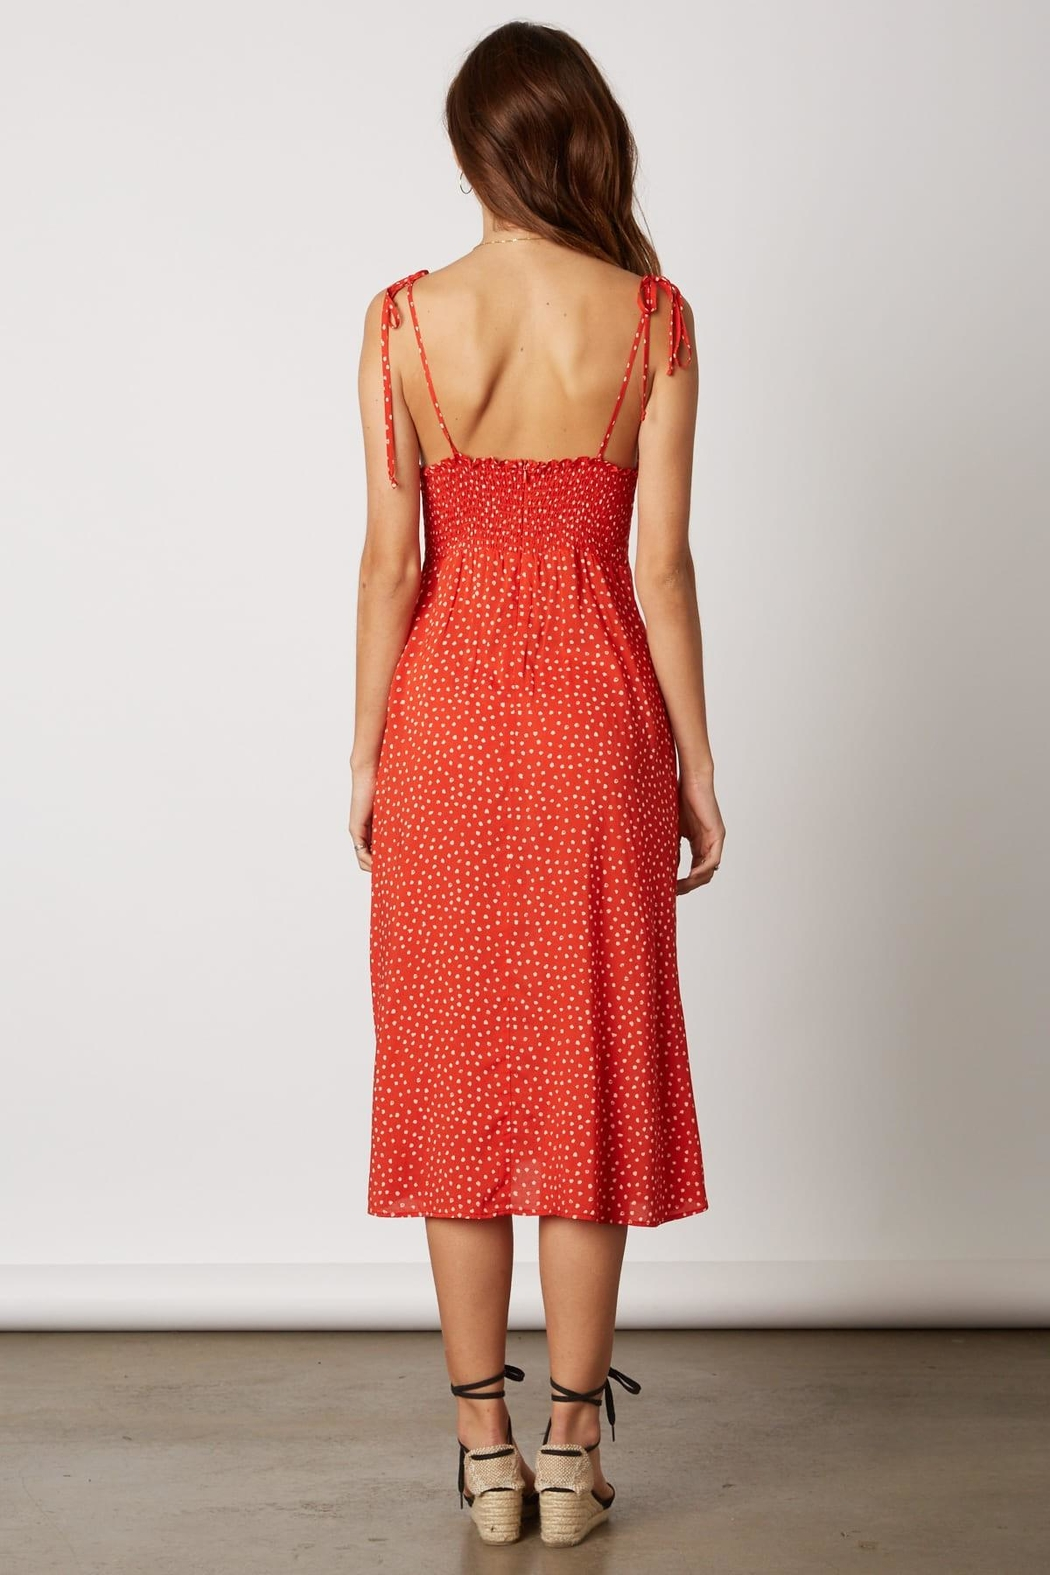 Cotton Candy LA Red Polka-Dot Dress - Side Cropped Image